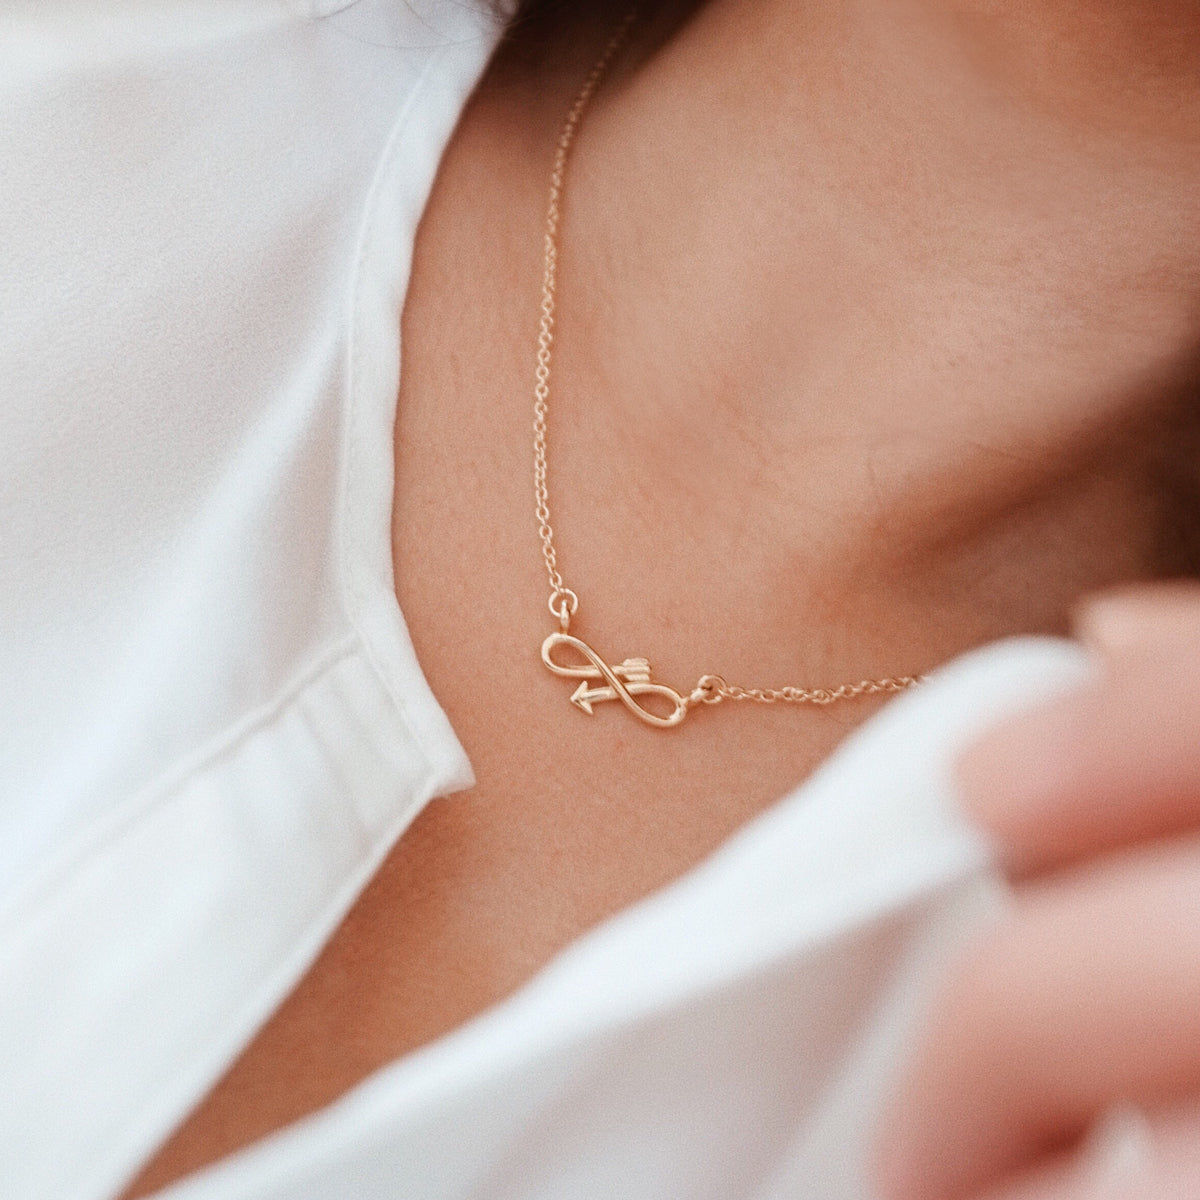 7b65621ff Bryan Anthonys dainty infinity endless arrow necklace 14k gold modeled  close-up